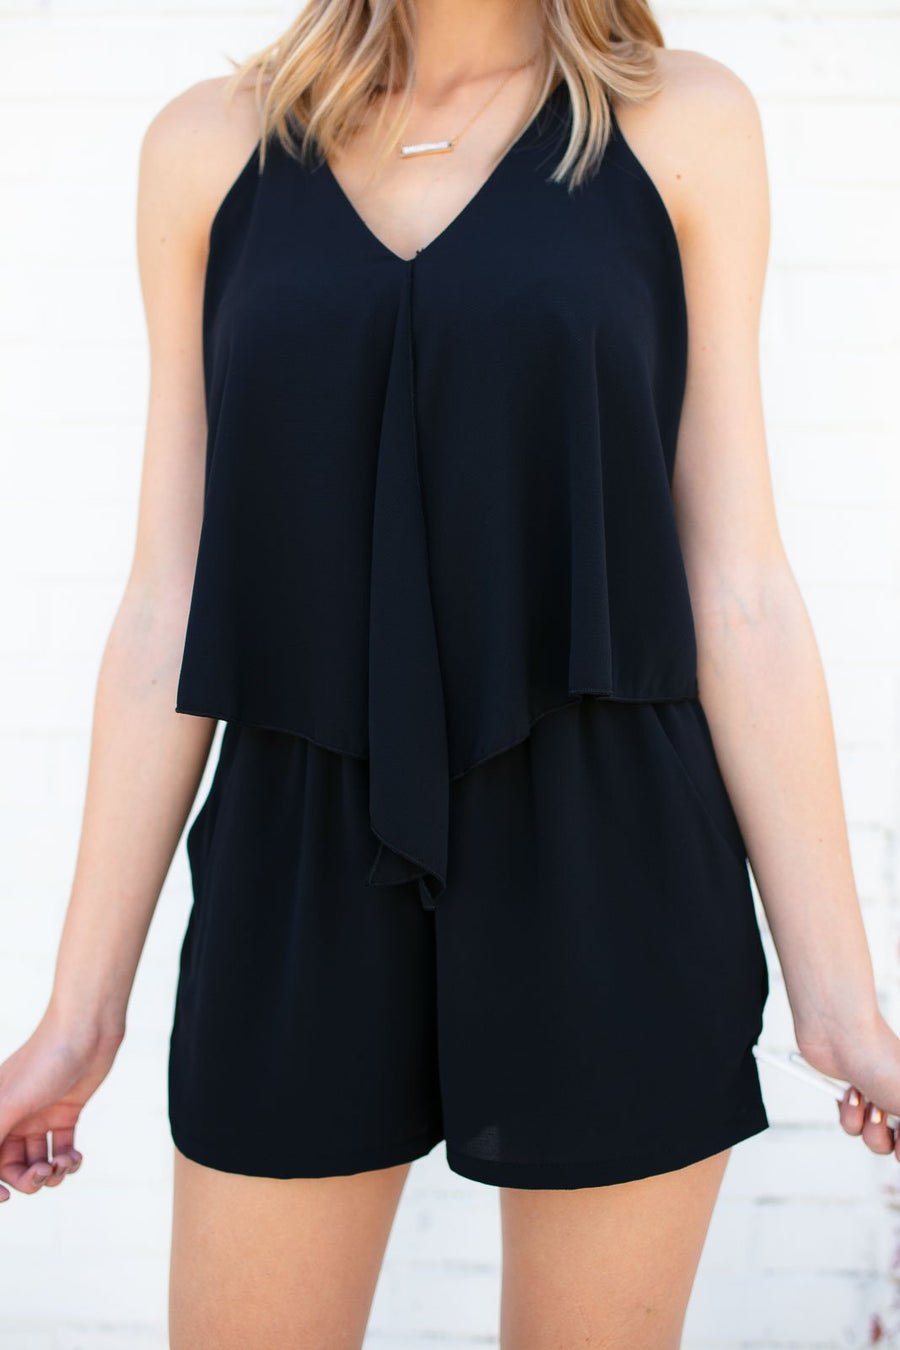 Rompers Free Flowing Layers Open Back Romper in Black - Lotus Boutique